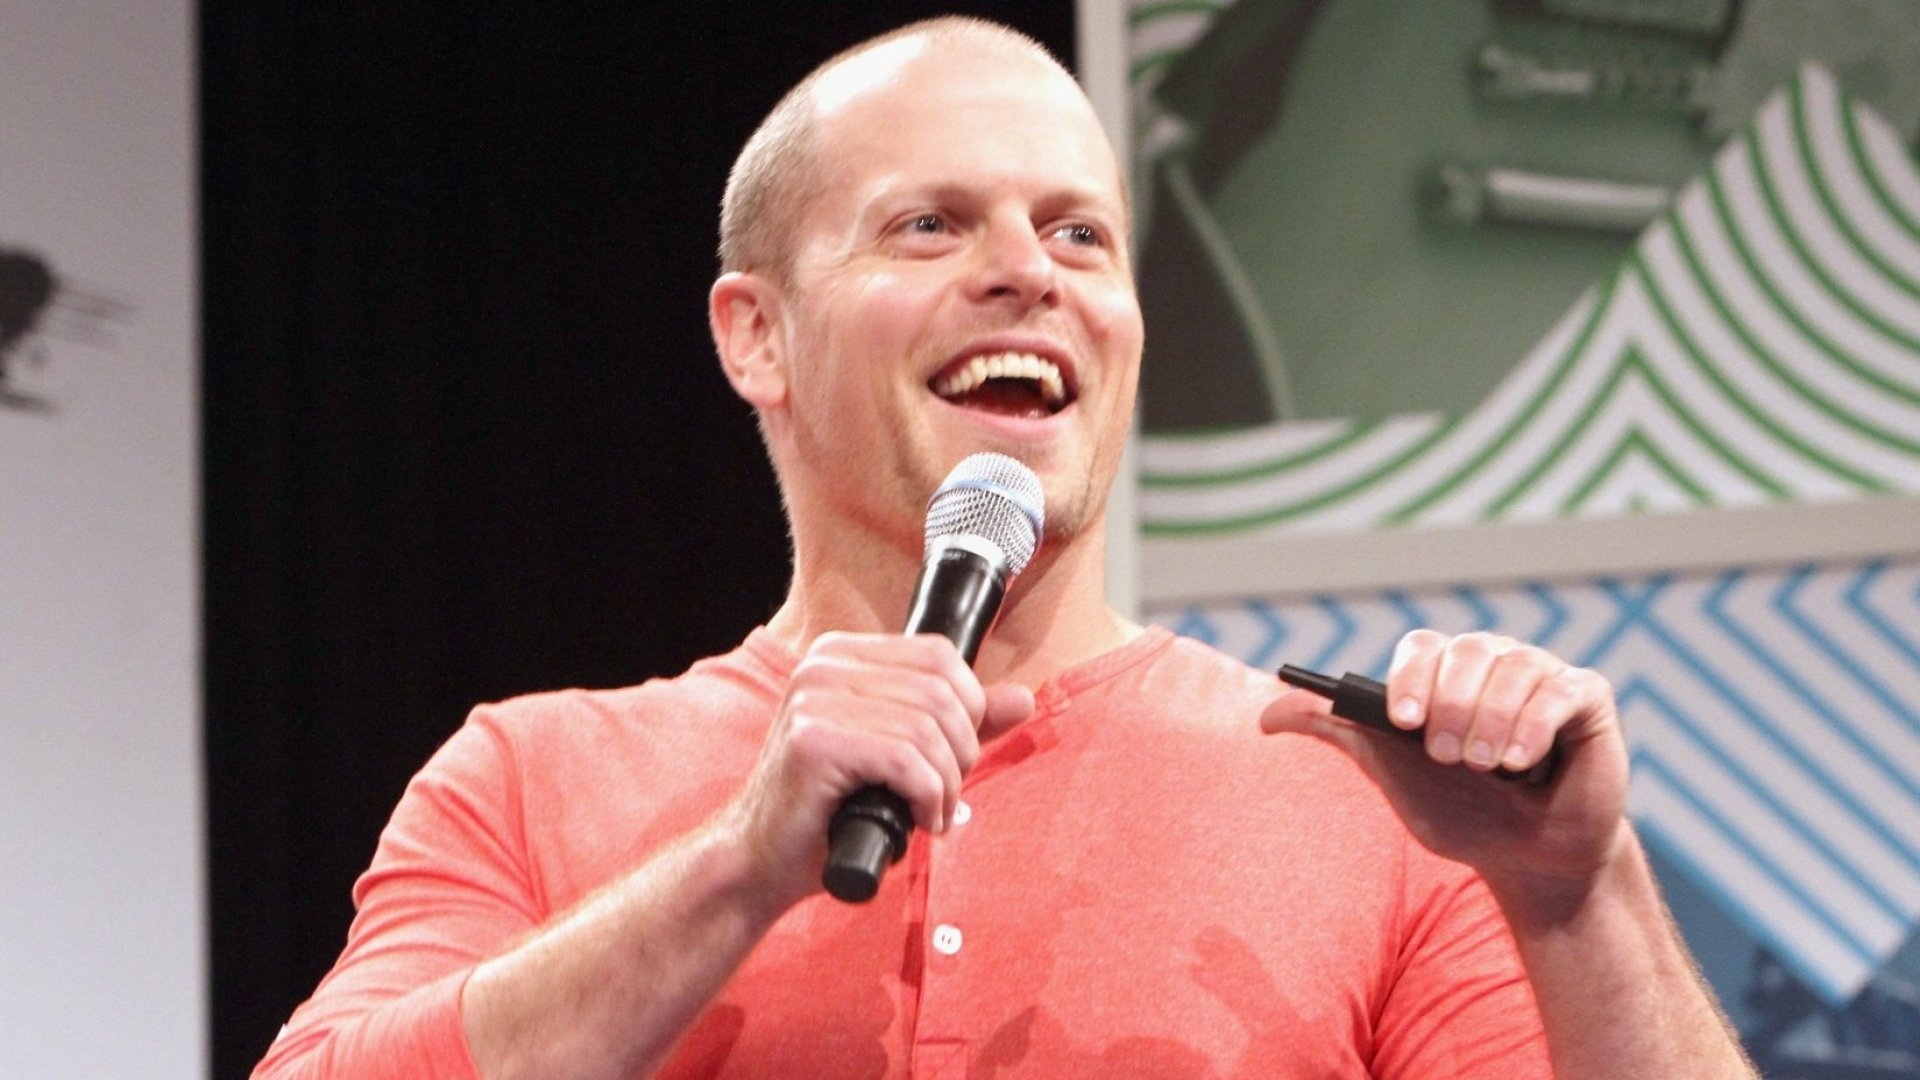 Tim Ferriss on Why Past-Year Reviews Are More Effective Than Goal Setting